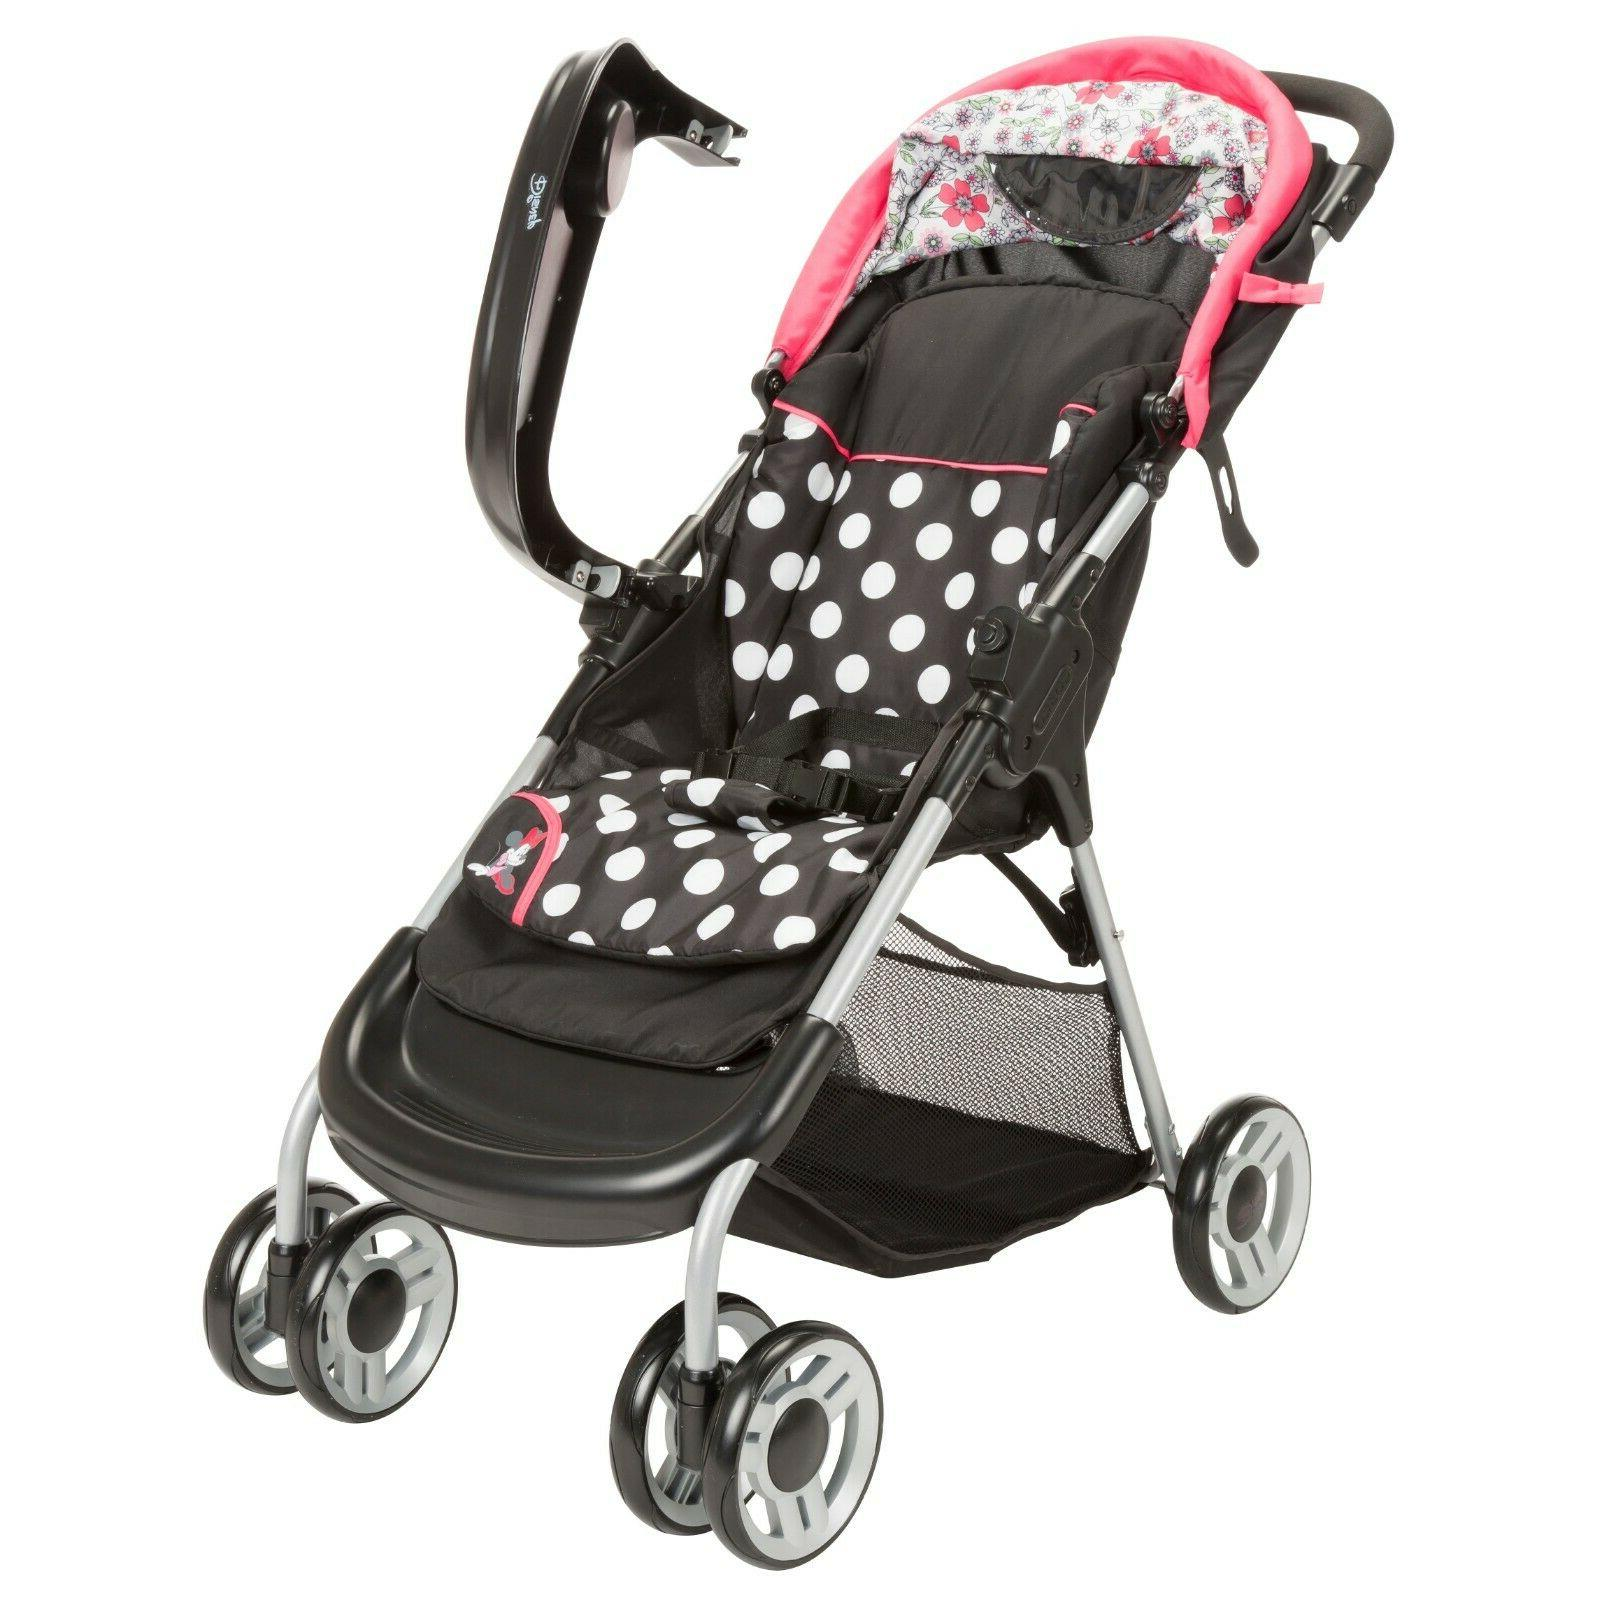 Baby Seat and Stroller Combo Set Travel System Infant Girl